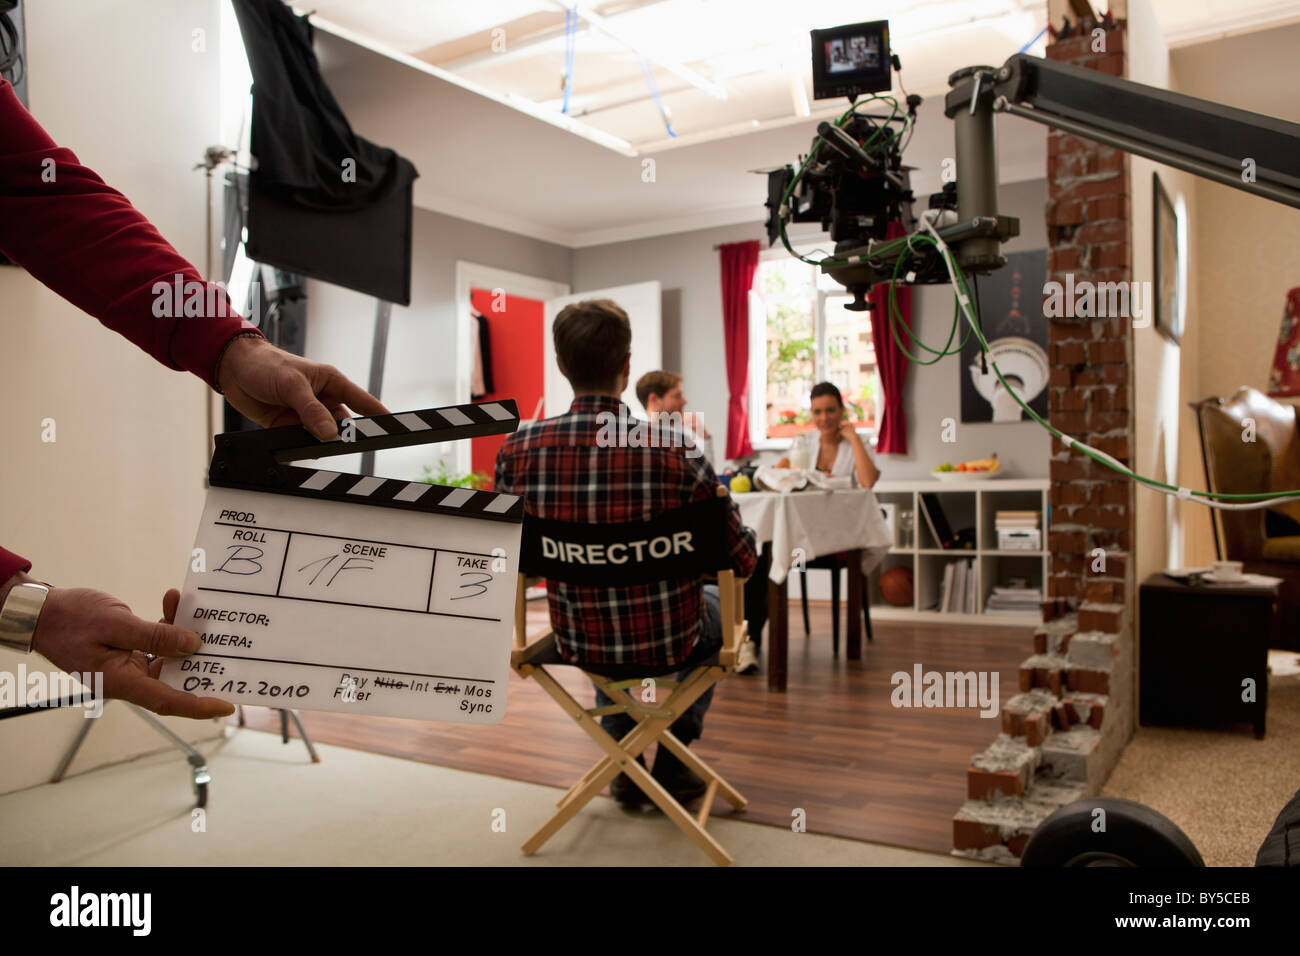 Film Set Design Jobs